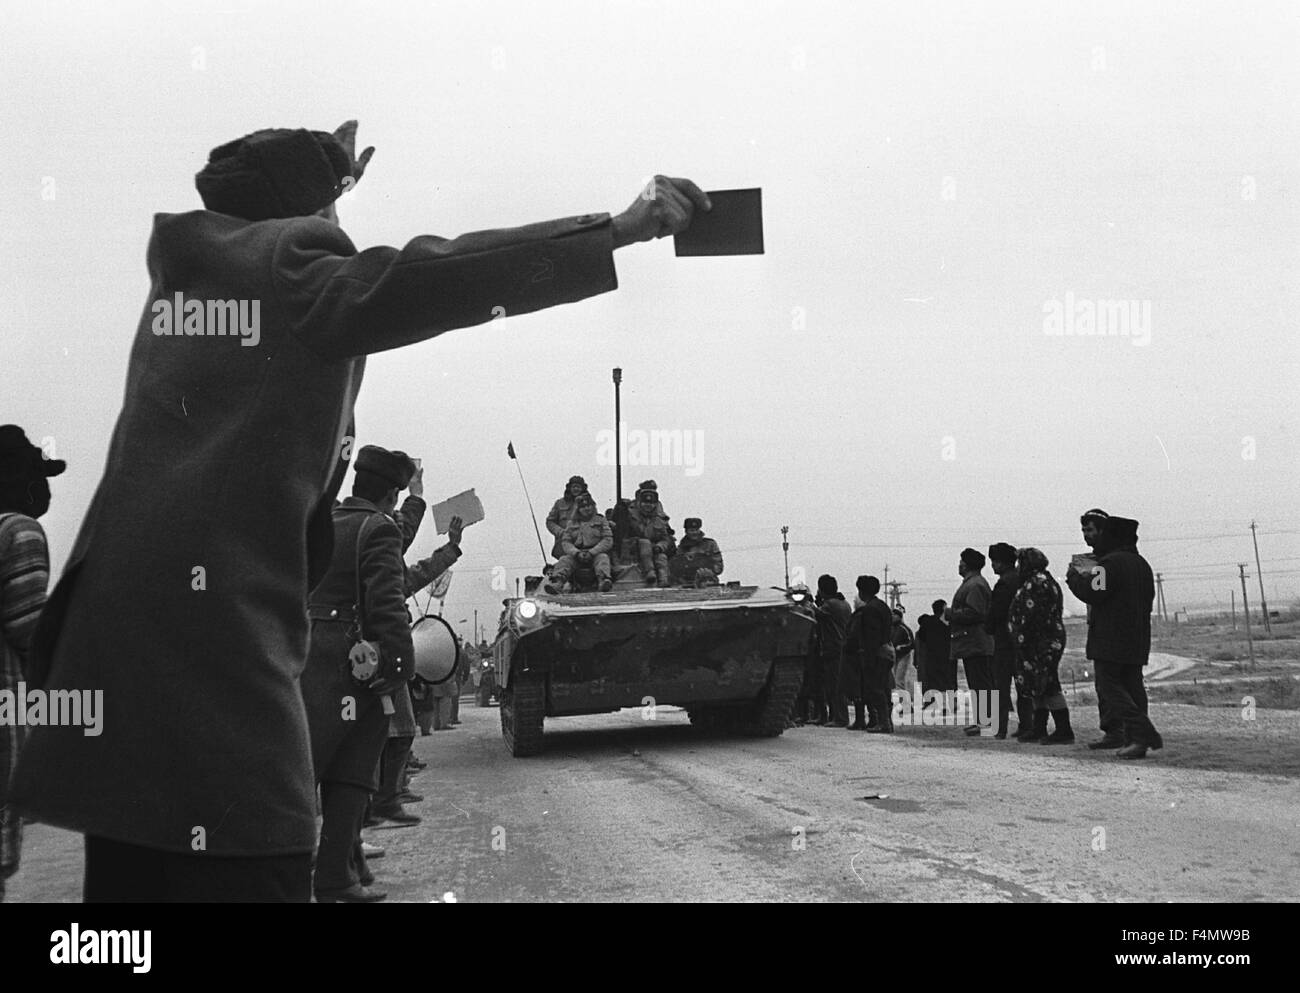 Soviet Afghanistan war - Page 6 Ussr-termez-withdrawal-of-soviet-forces-from-afghanistan-soldiers-F4MW9B